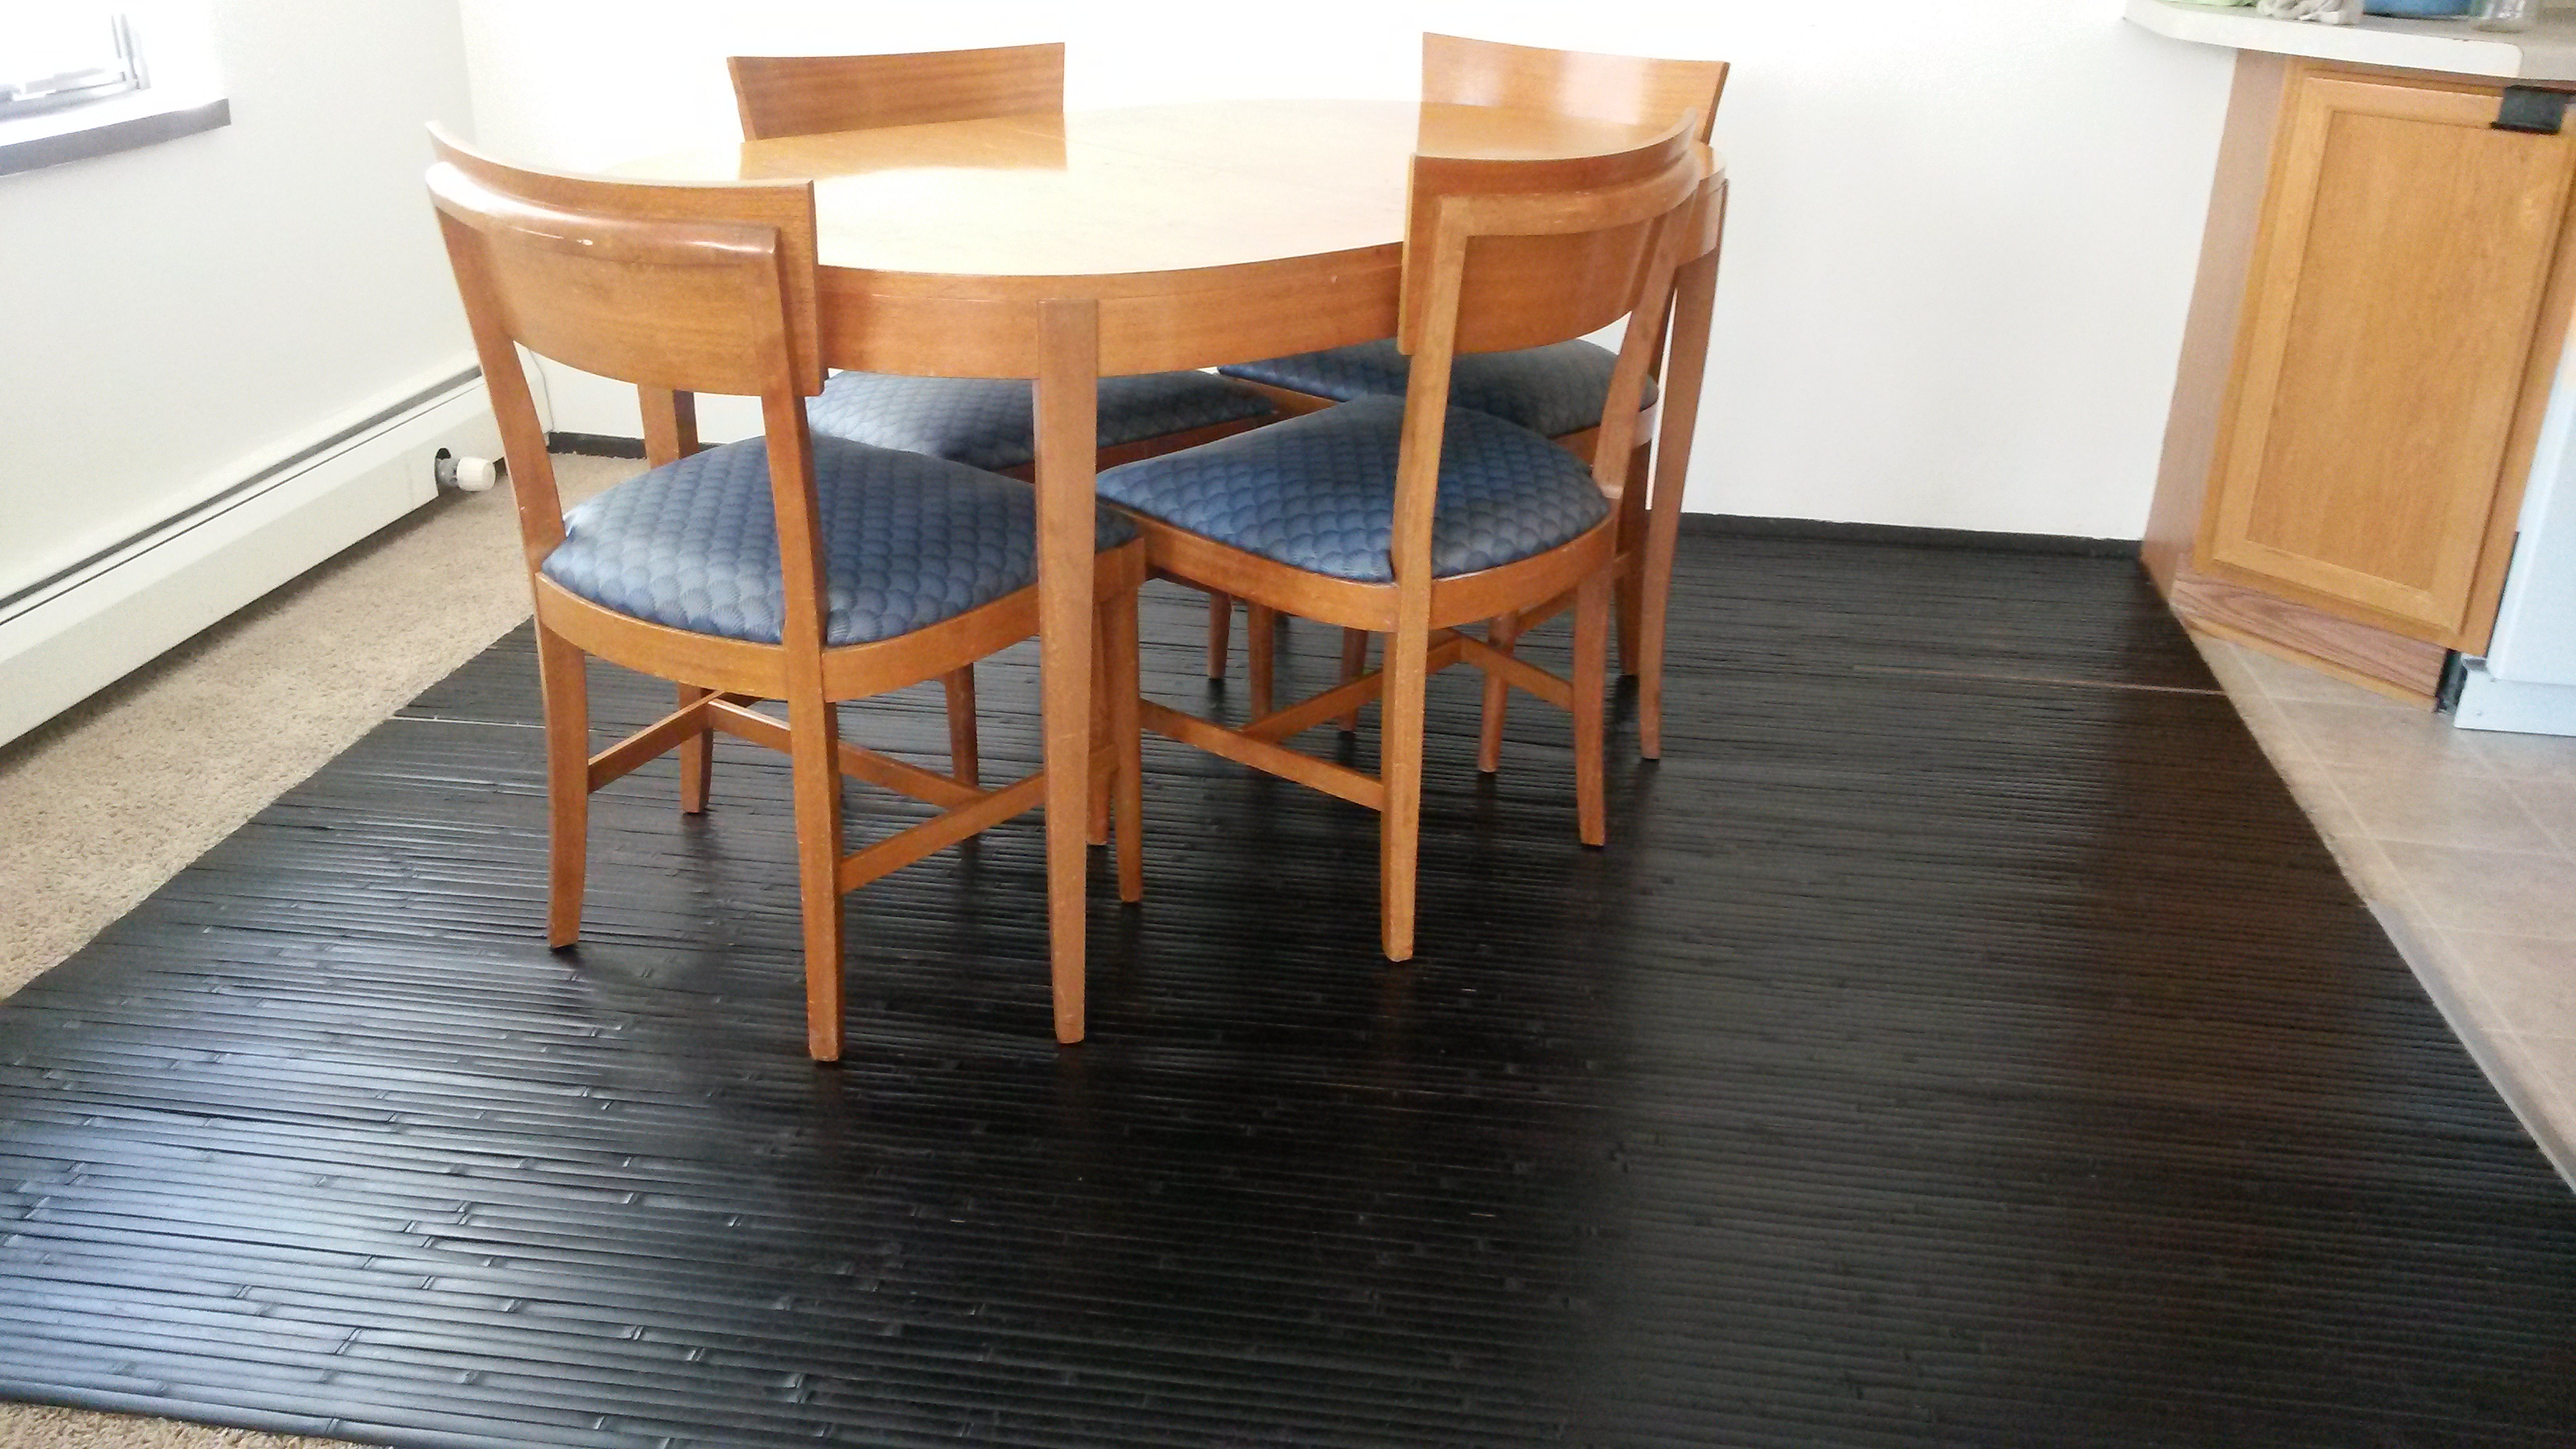 Best flooring over carpet part 2 skywaymom for Dining room flooring